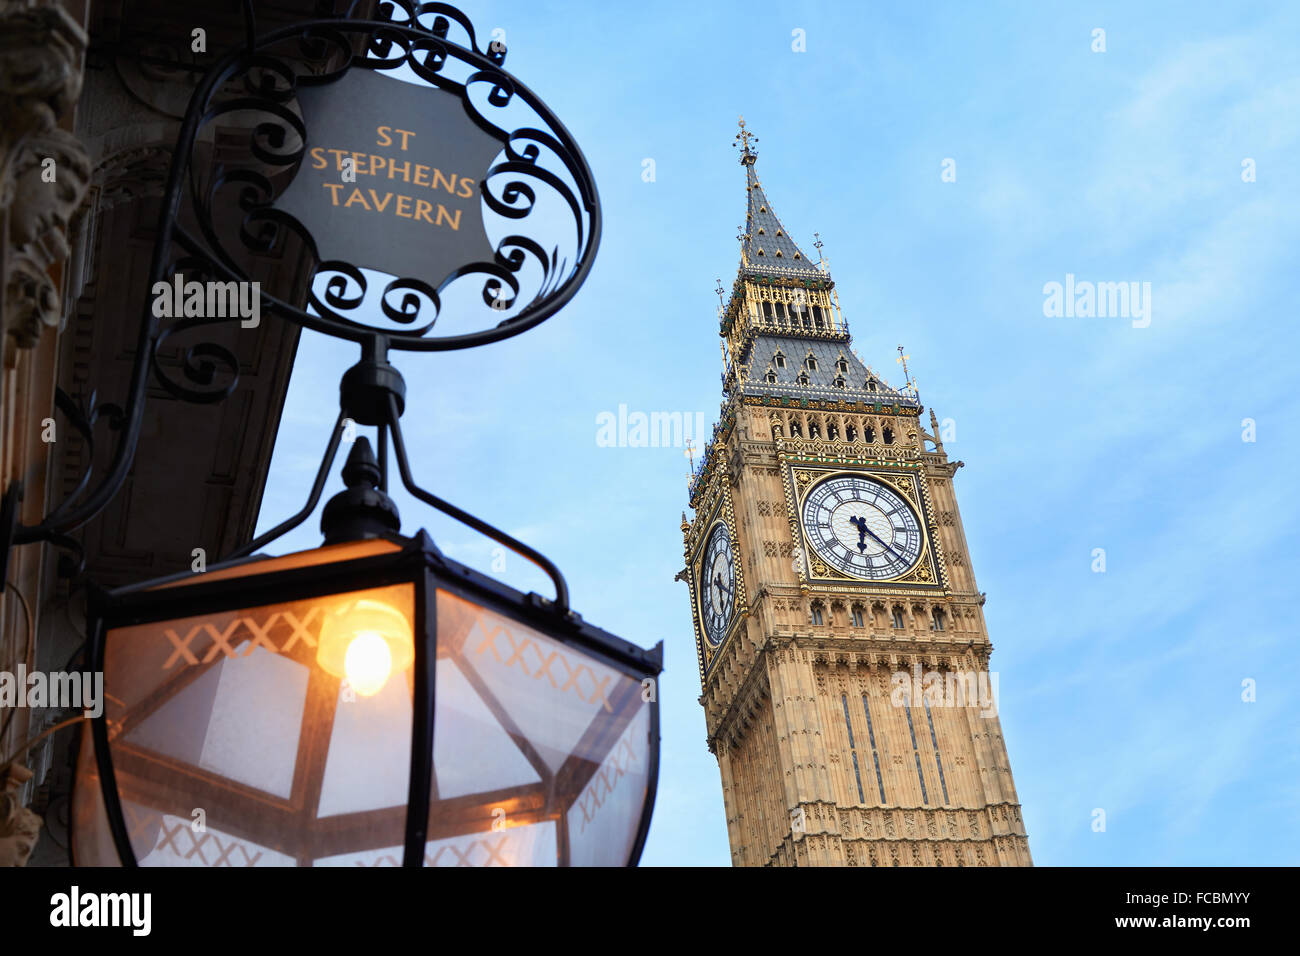 Big Ben und alte St Stephens Taverne Lampe, blauer Himmel in London Stockbild